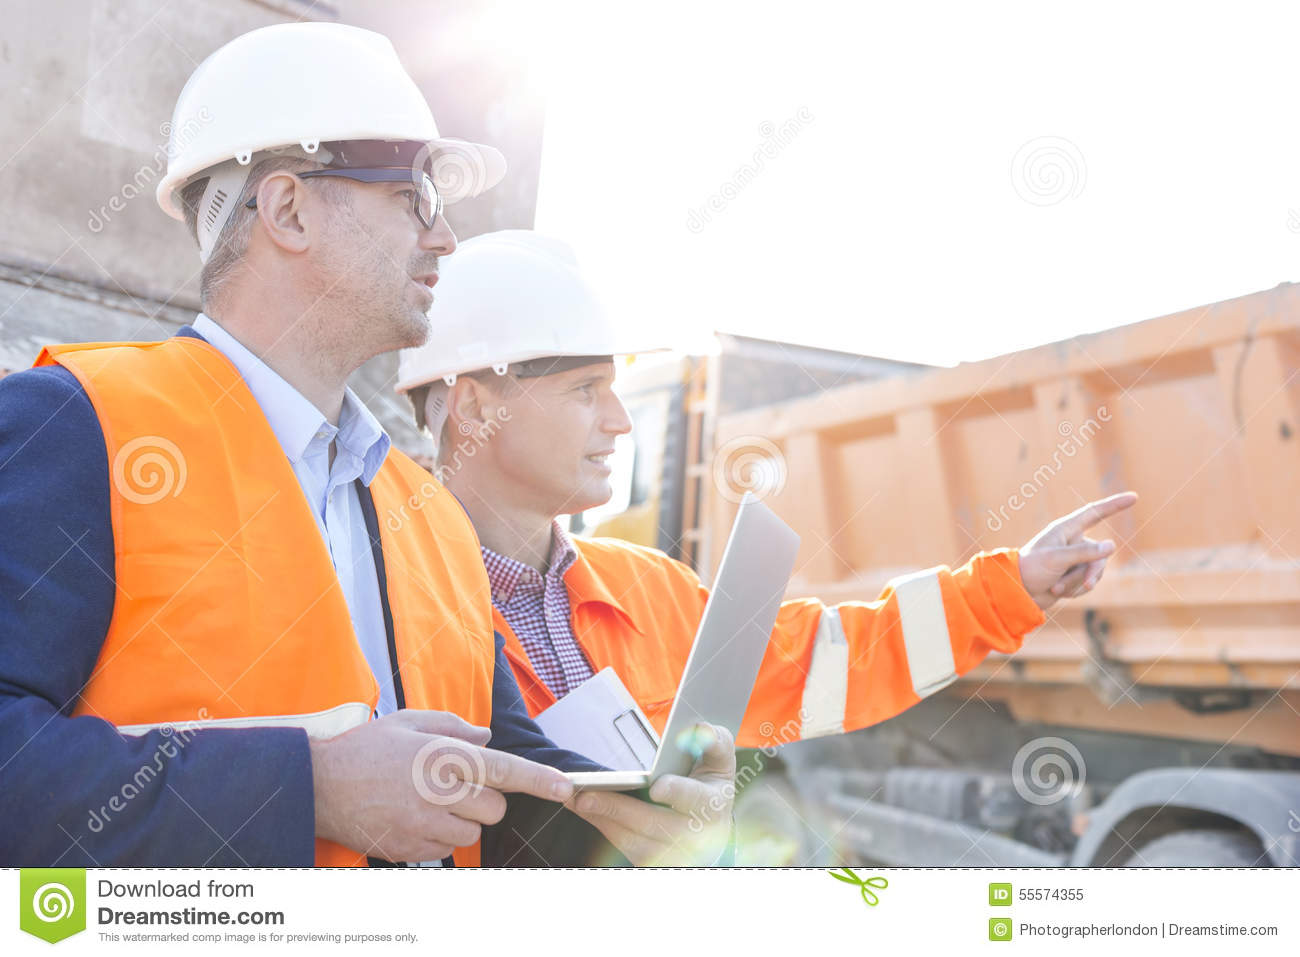 supervisor with construction hard hat and high visibility